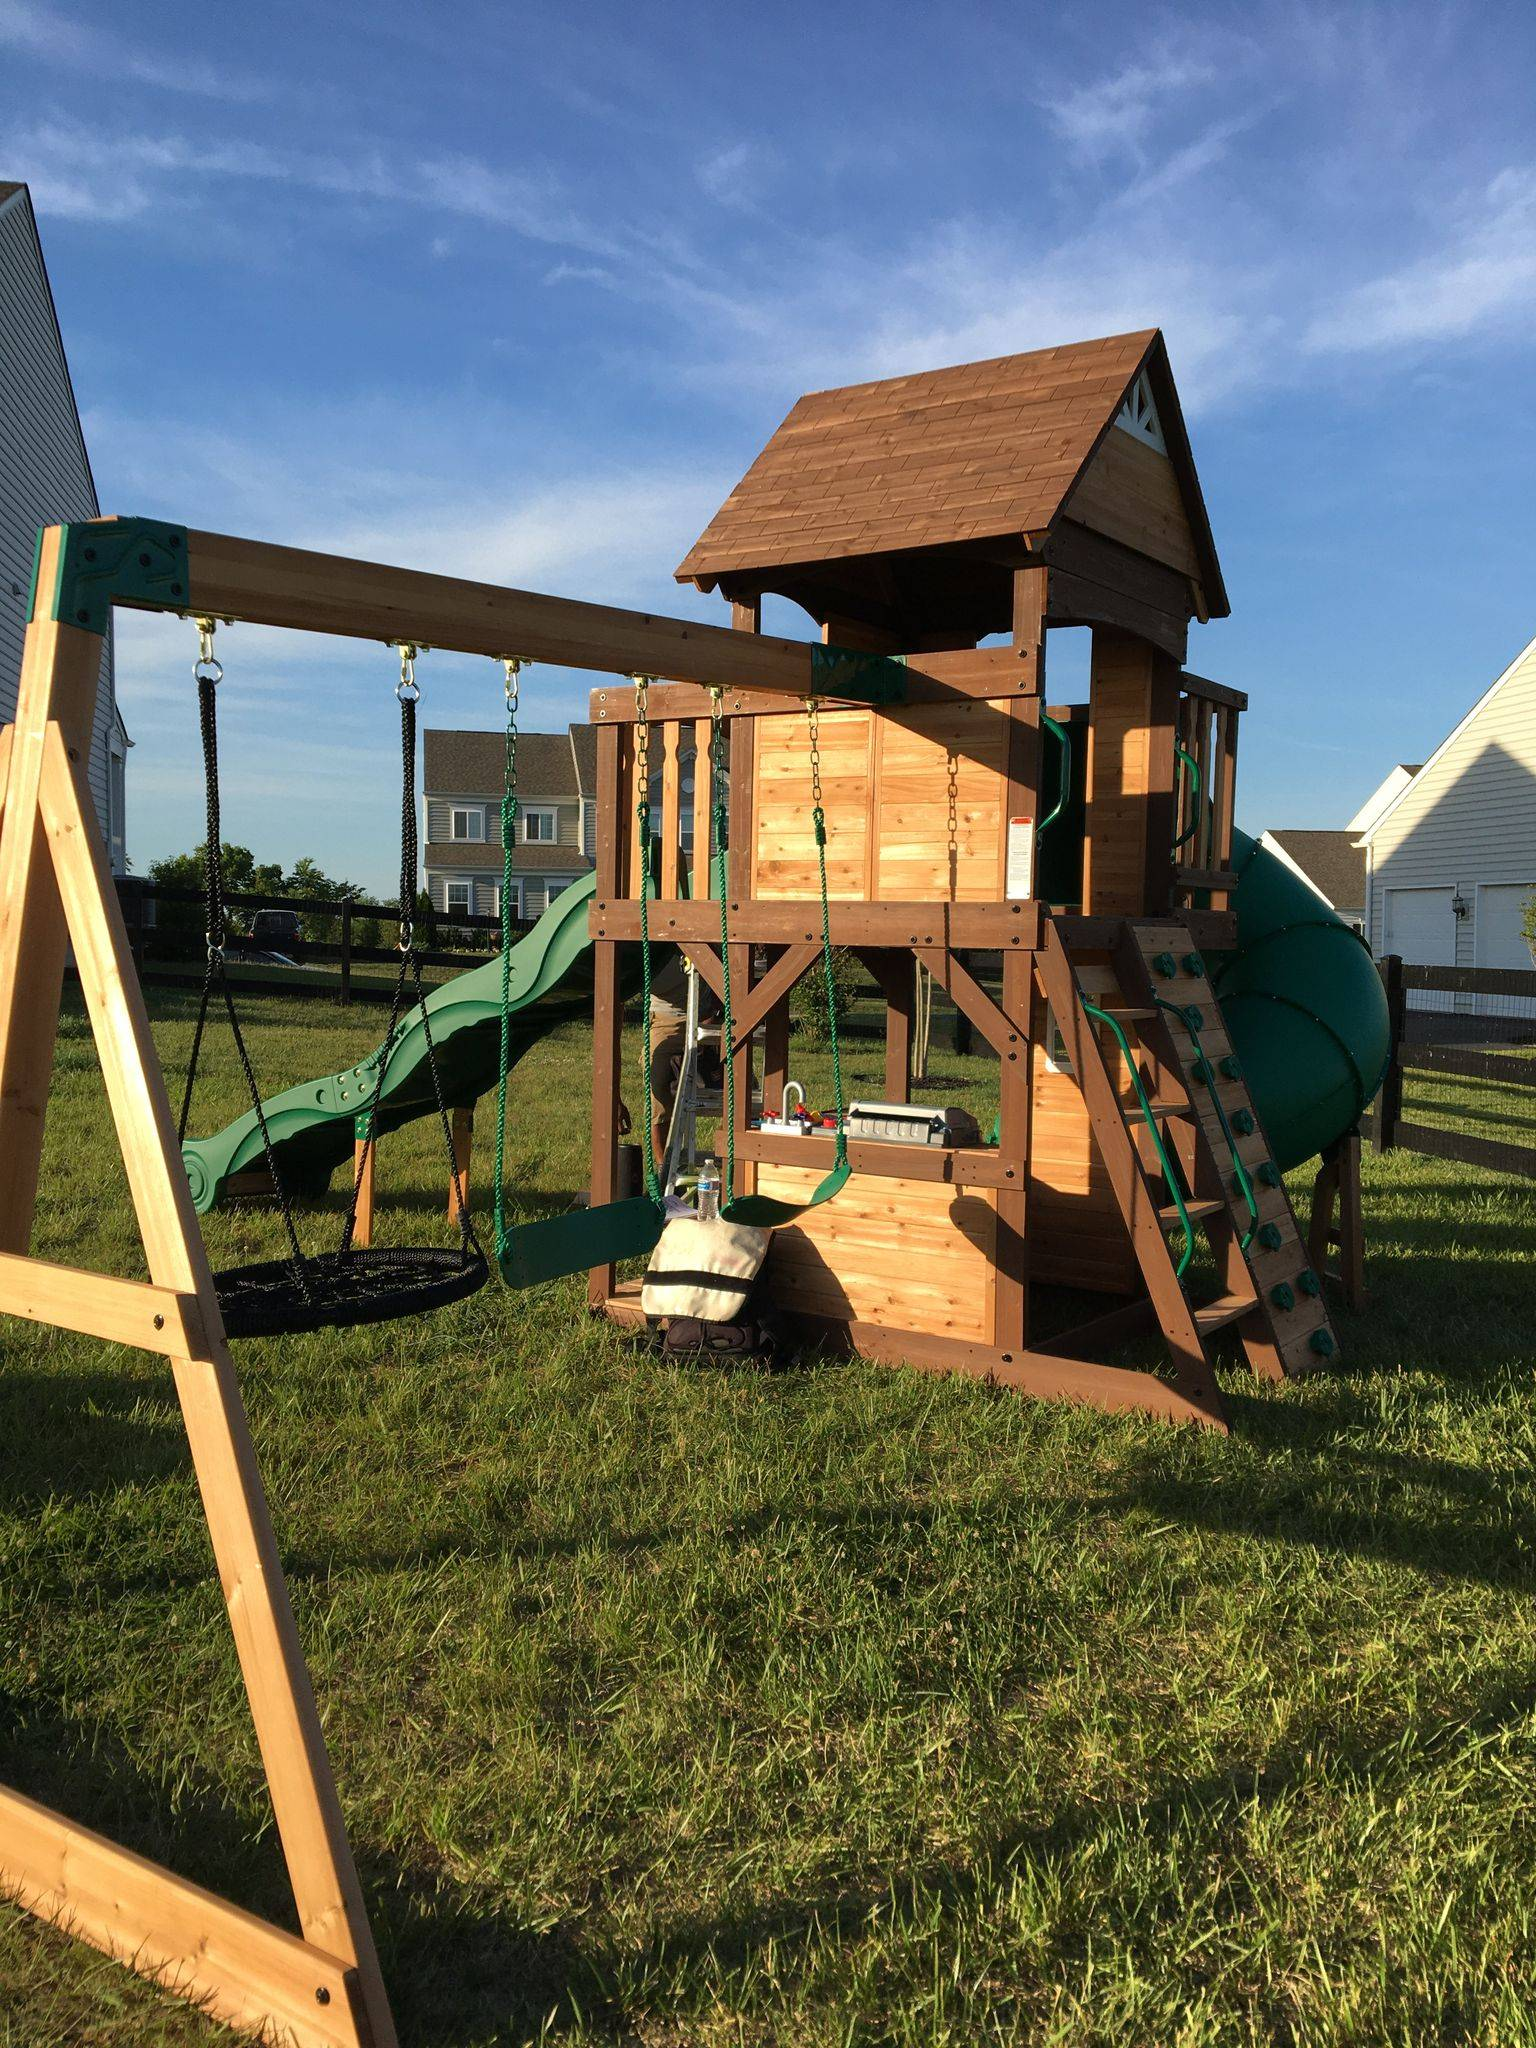 Backyard discovery cedar cove swing set assembly in poolesville Maryland